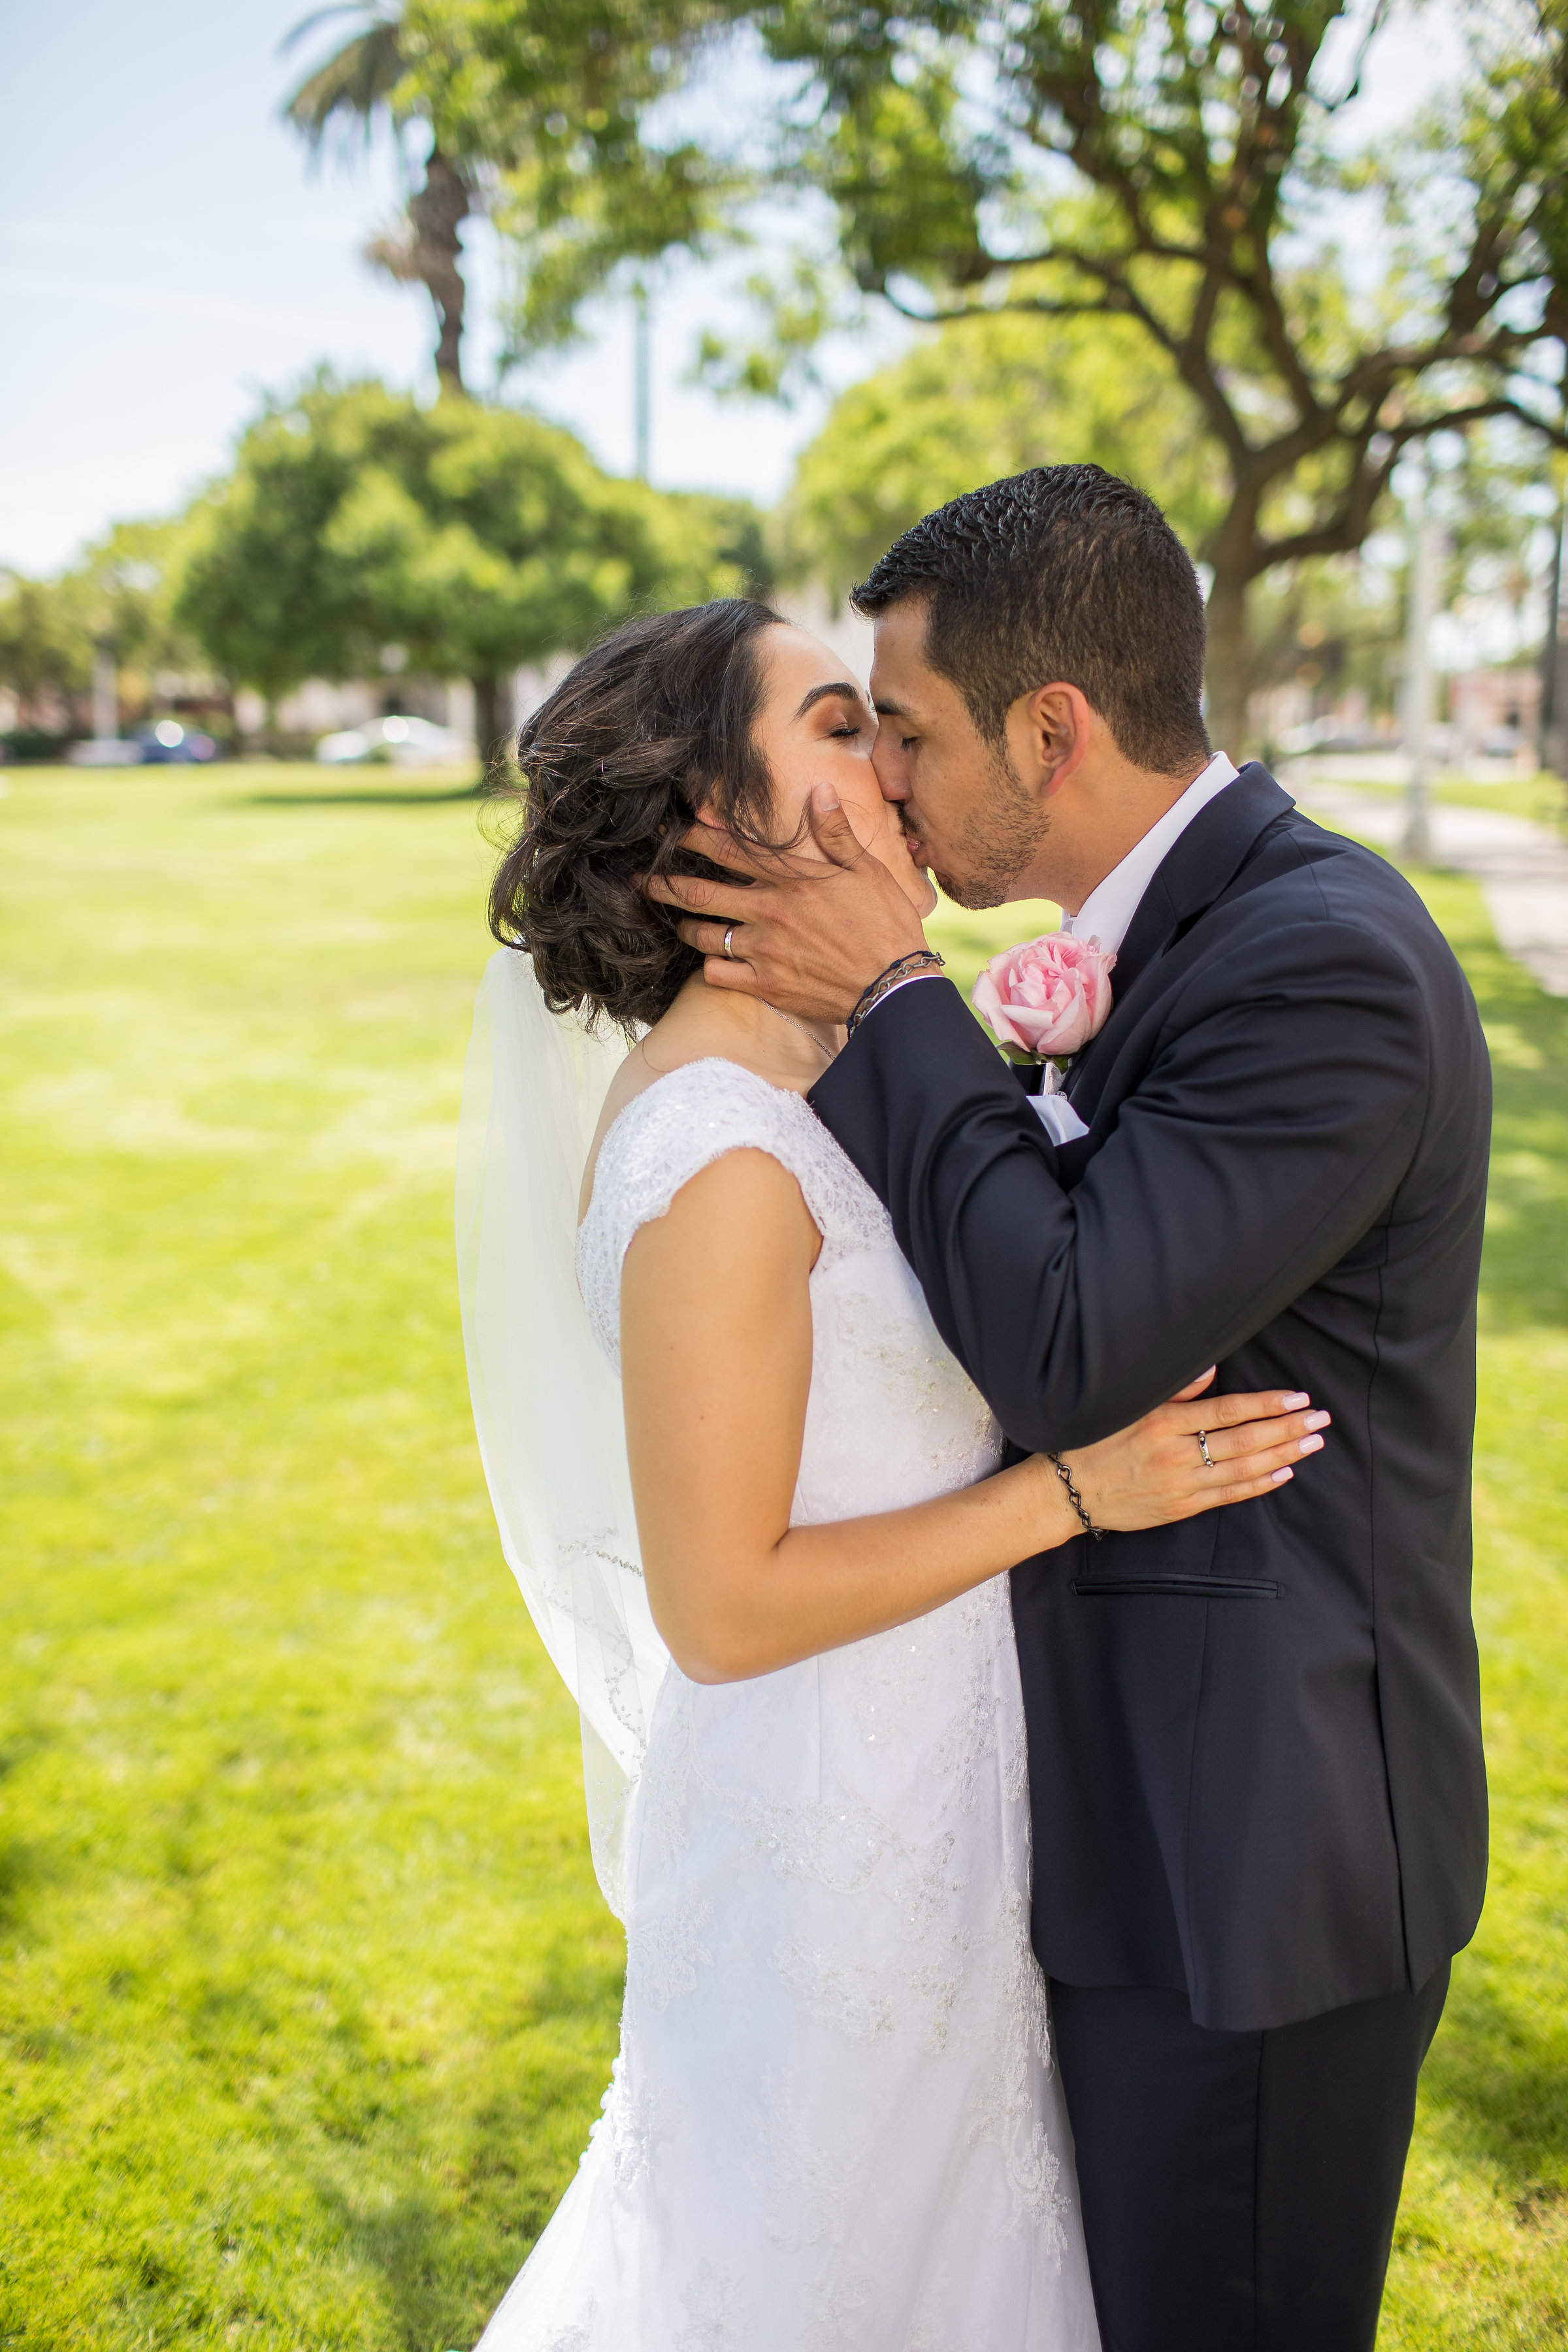 ! Bride and Groom Kissing in the Park.jpg